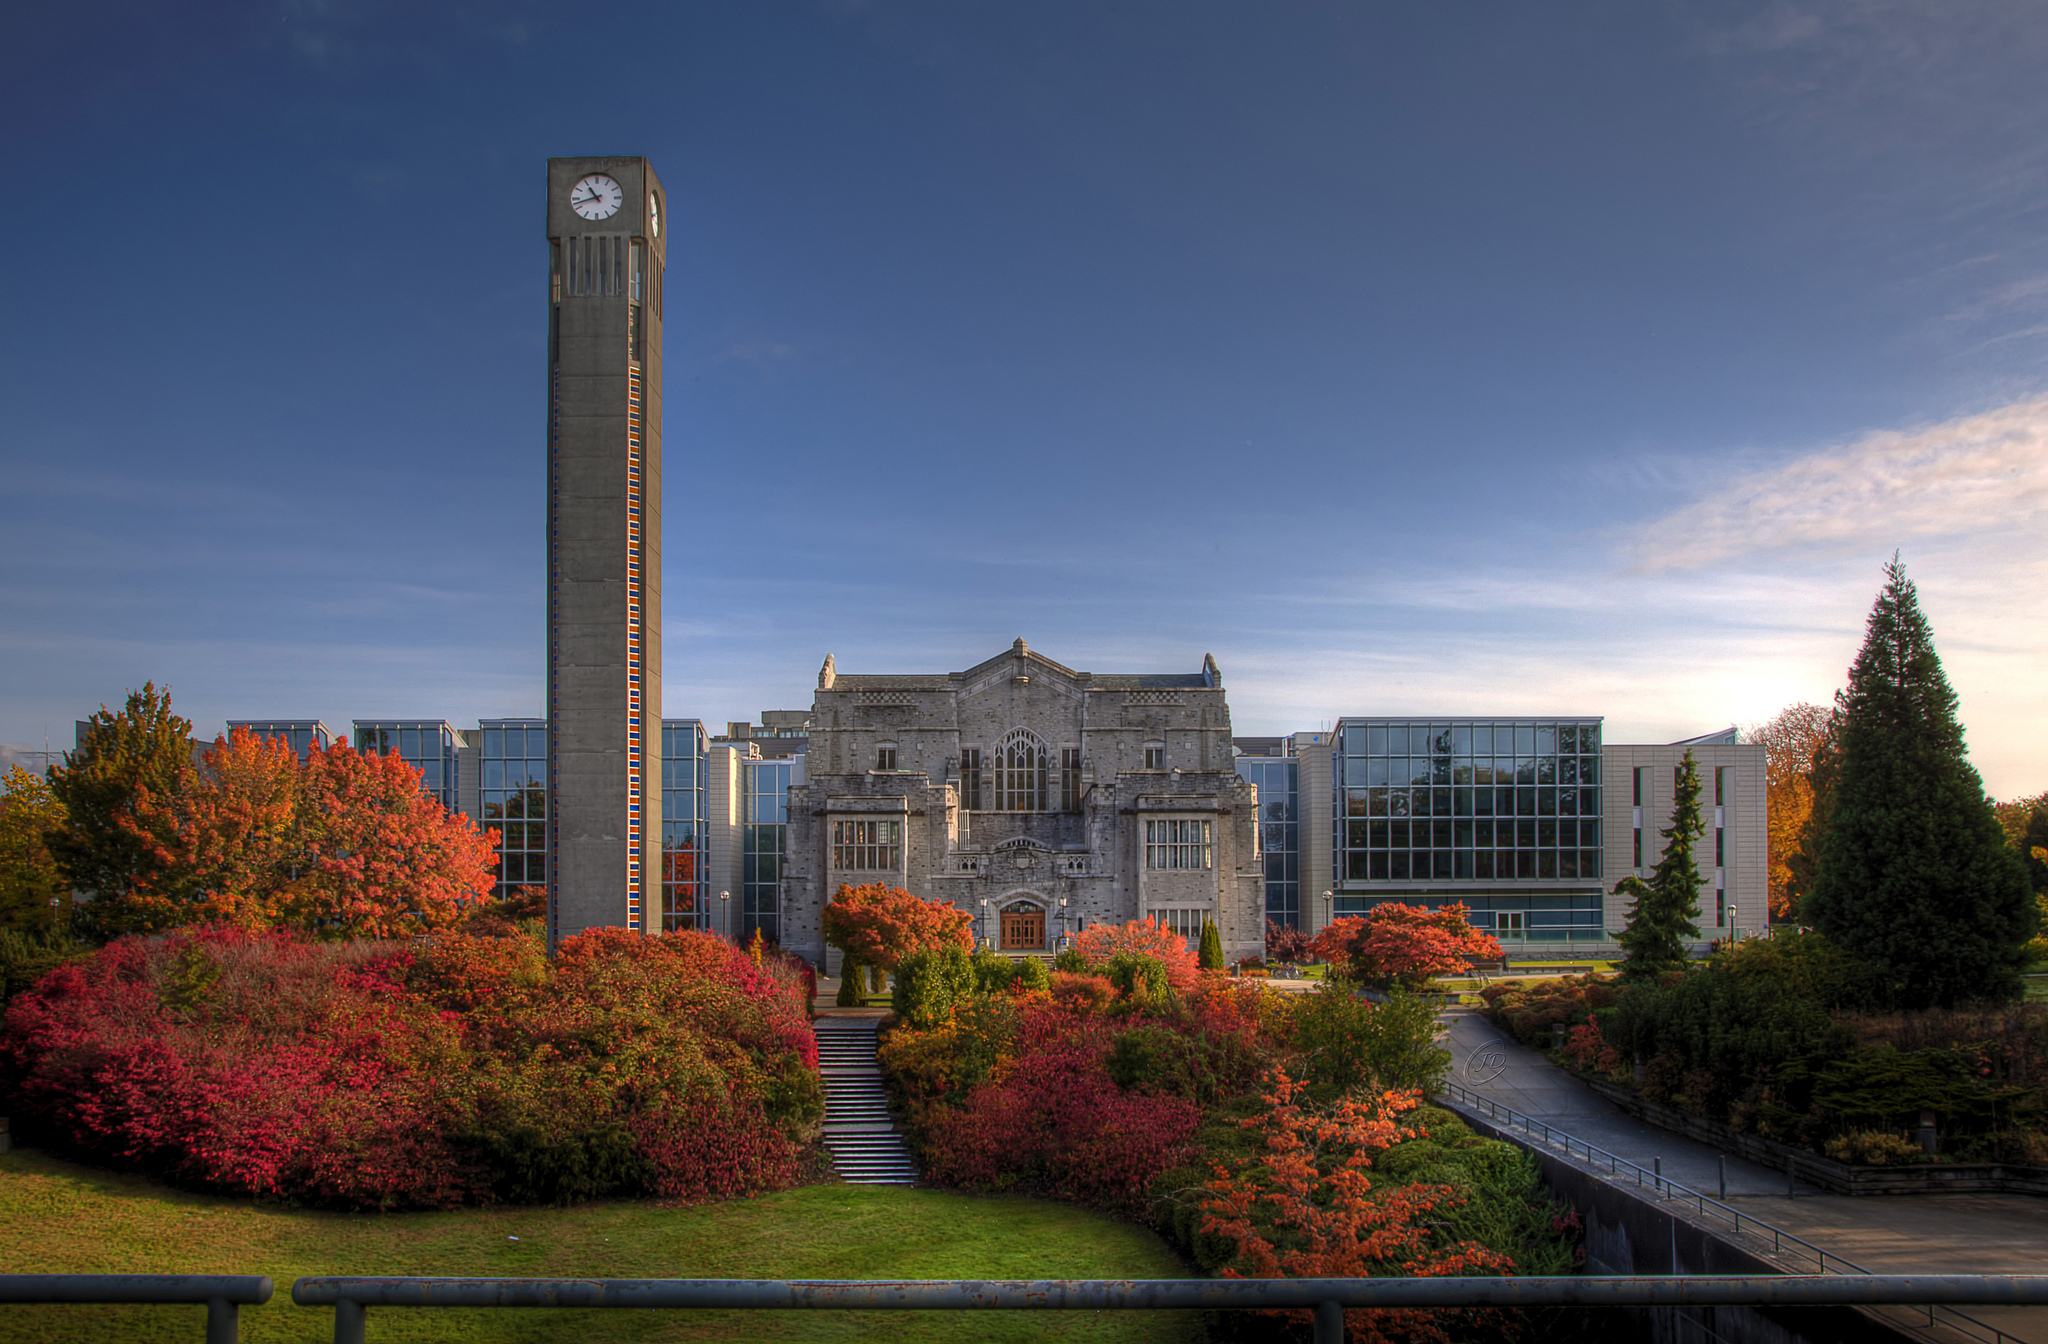 University of British Columbia  - Vancouver, British Columbia